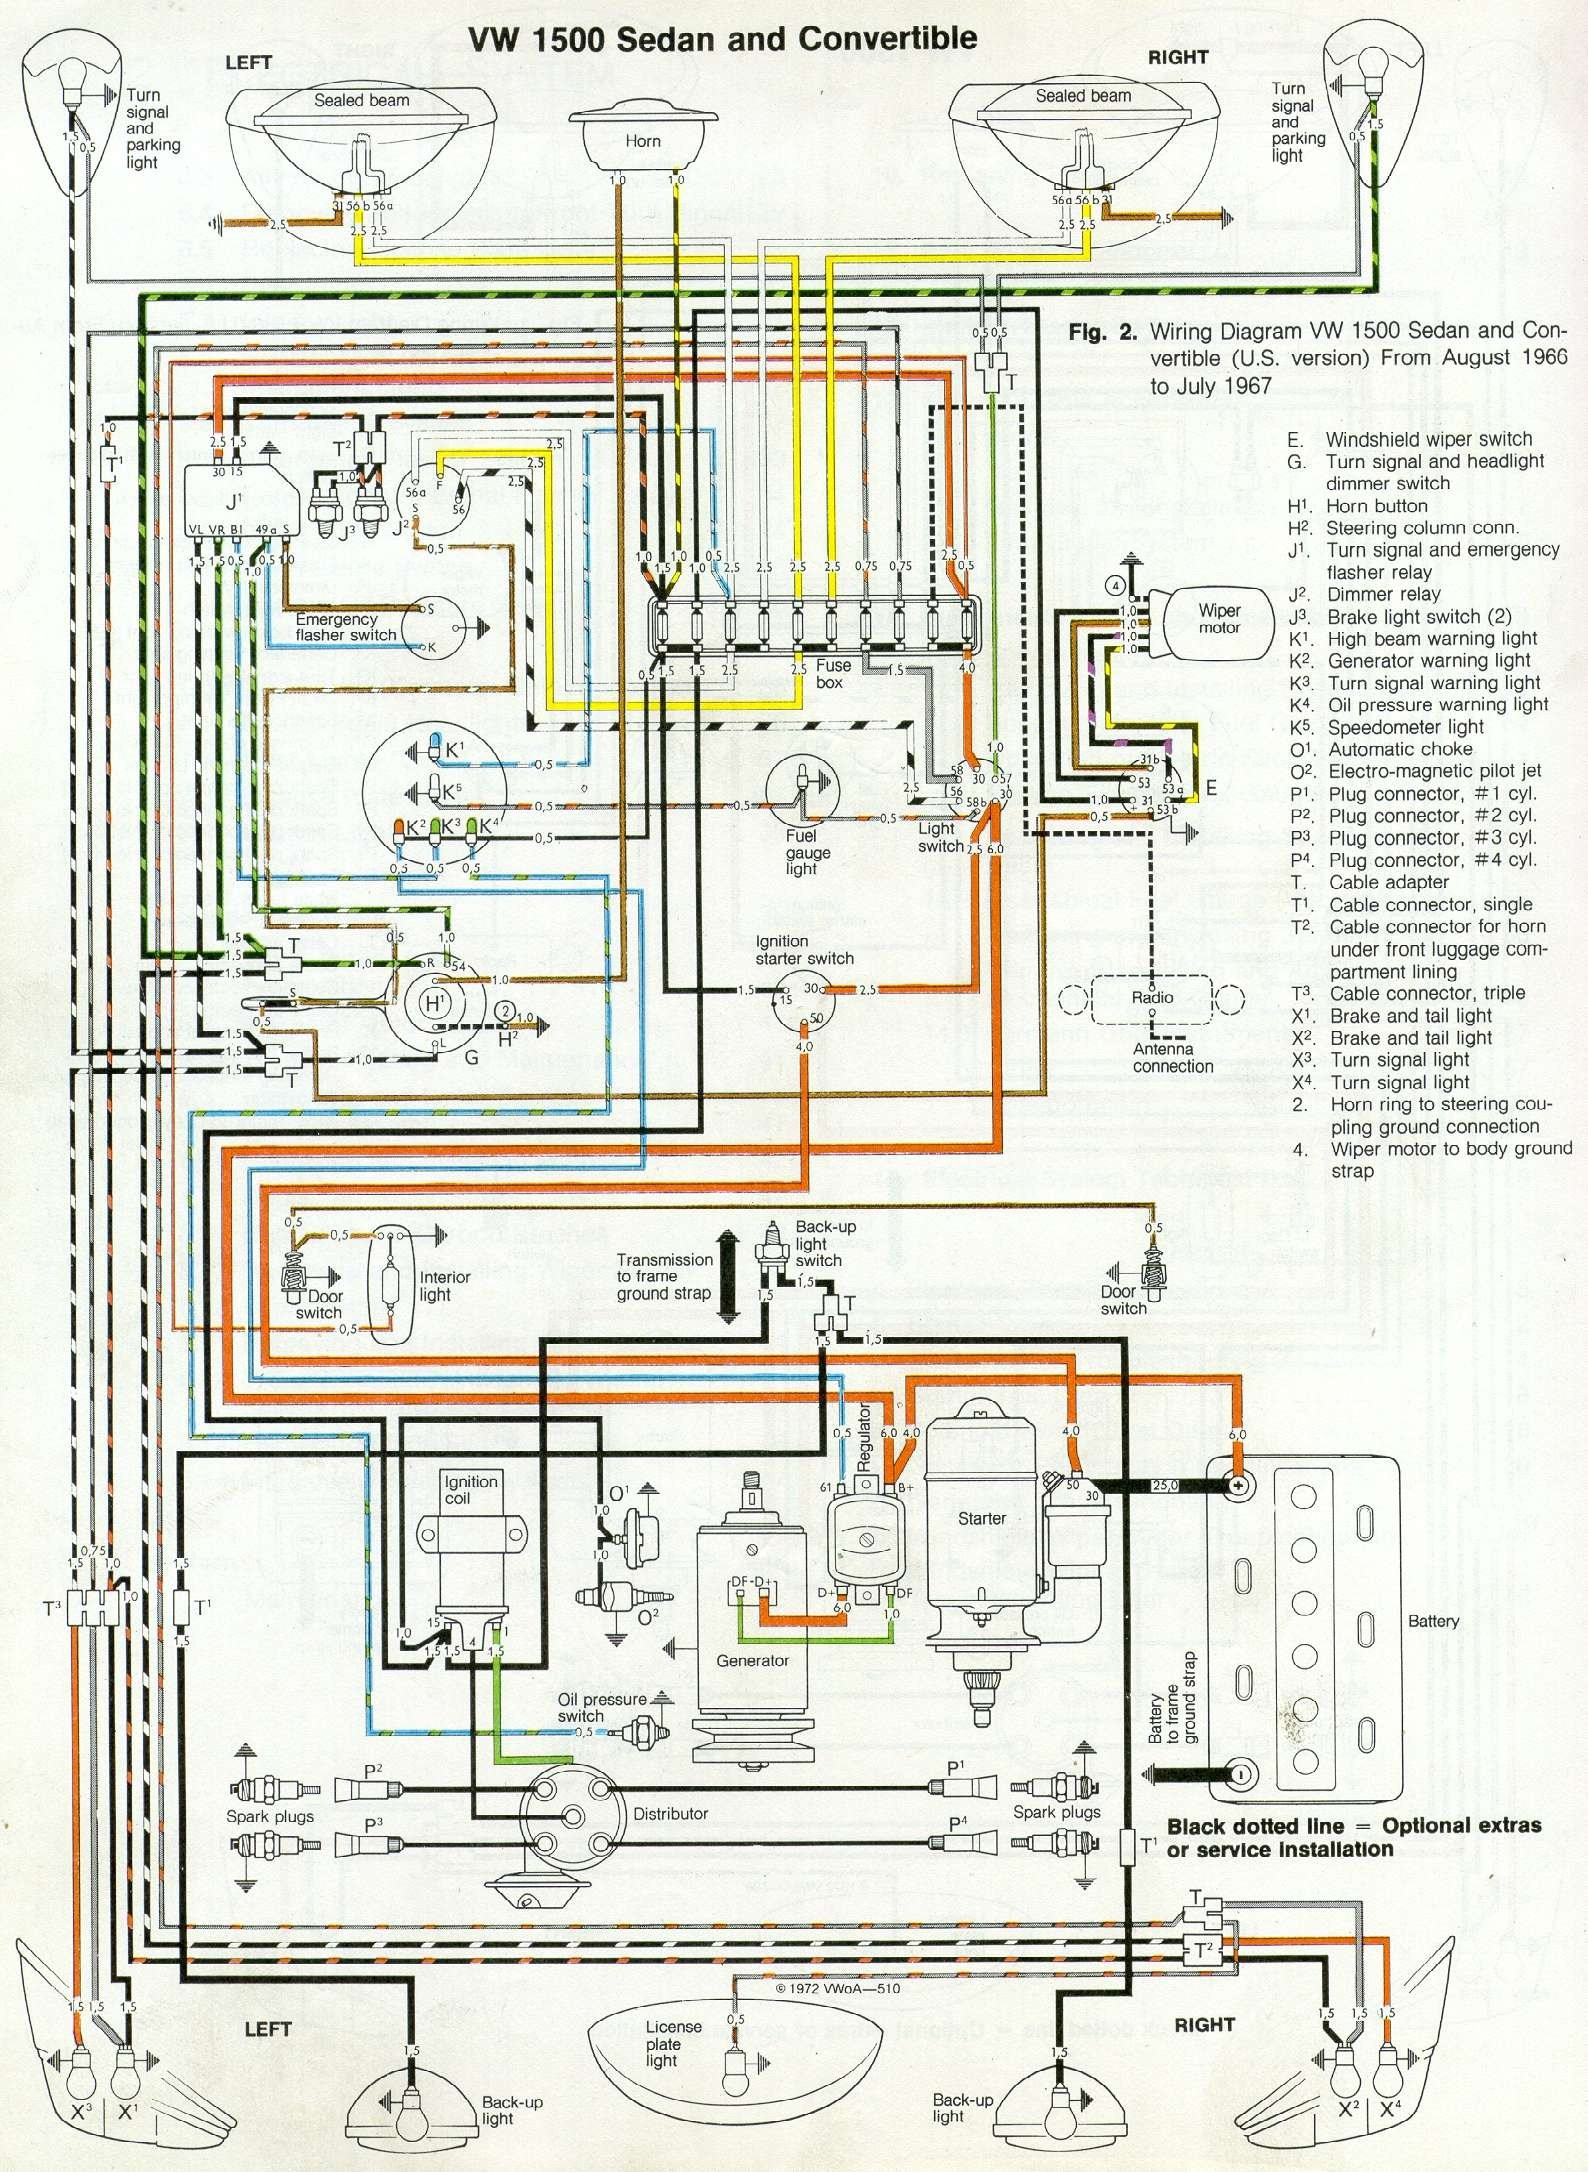 VW Beetle Wiring Digram 67 beetle wiring diagram u s version 1967 vw beetle vw bug wiring diagram at arjmand.co